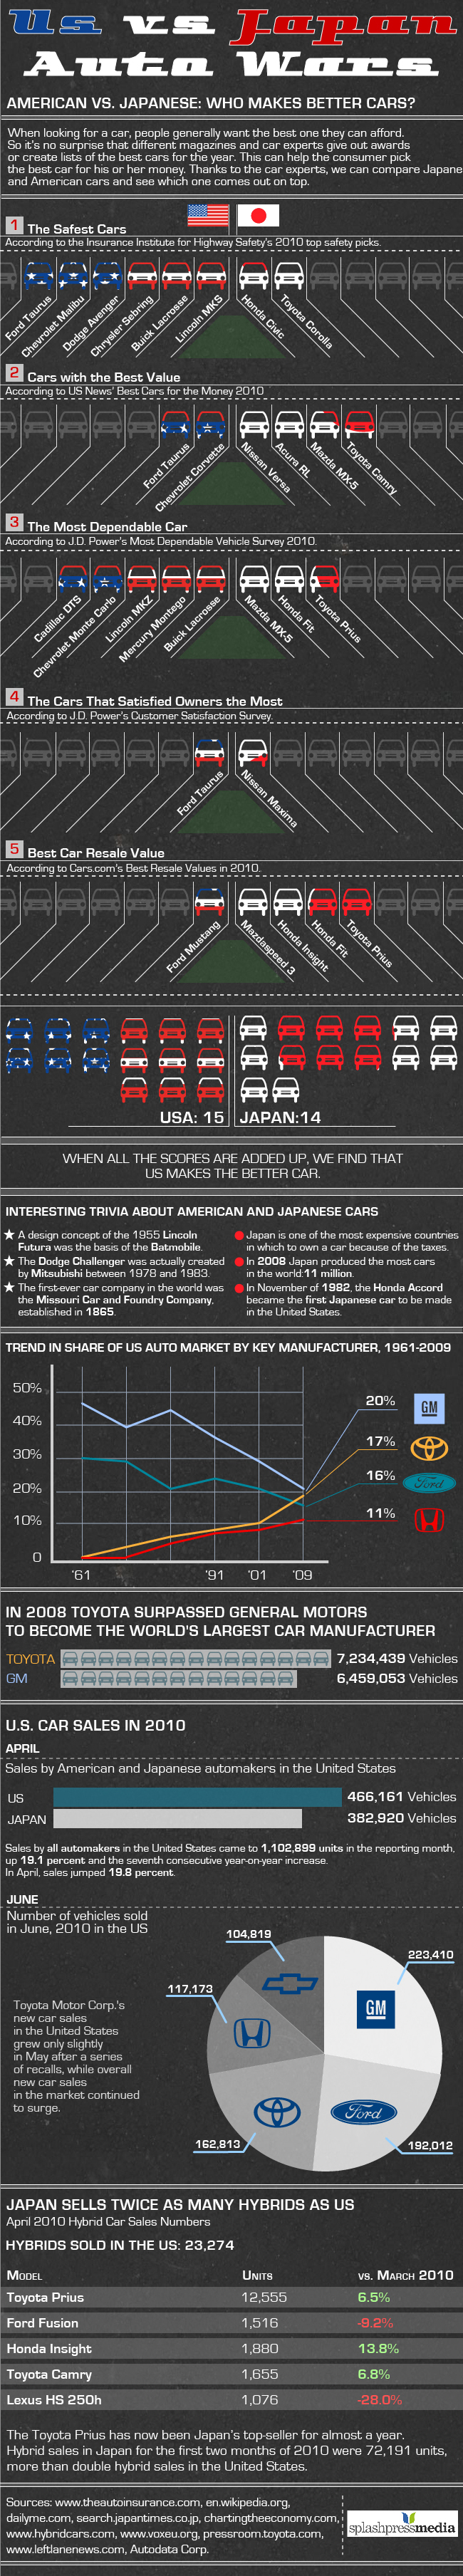 car firms vs Japanese car